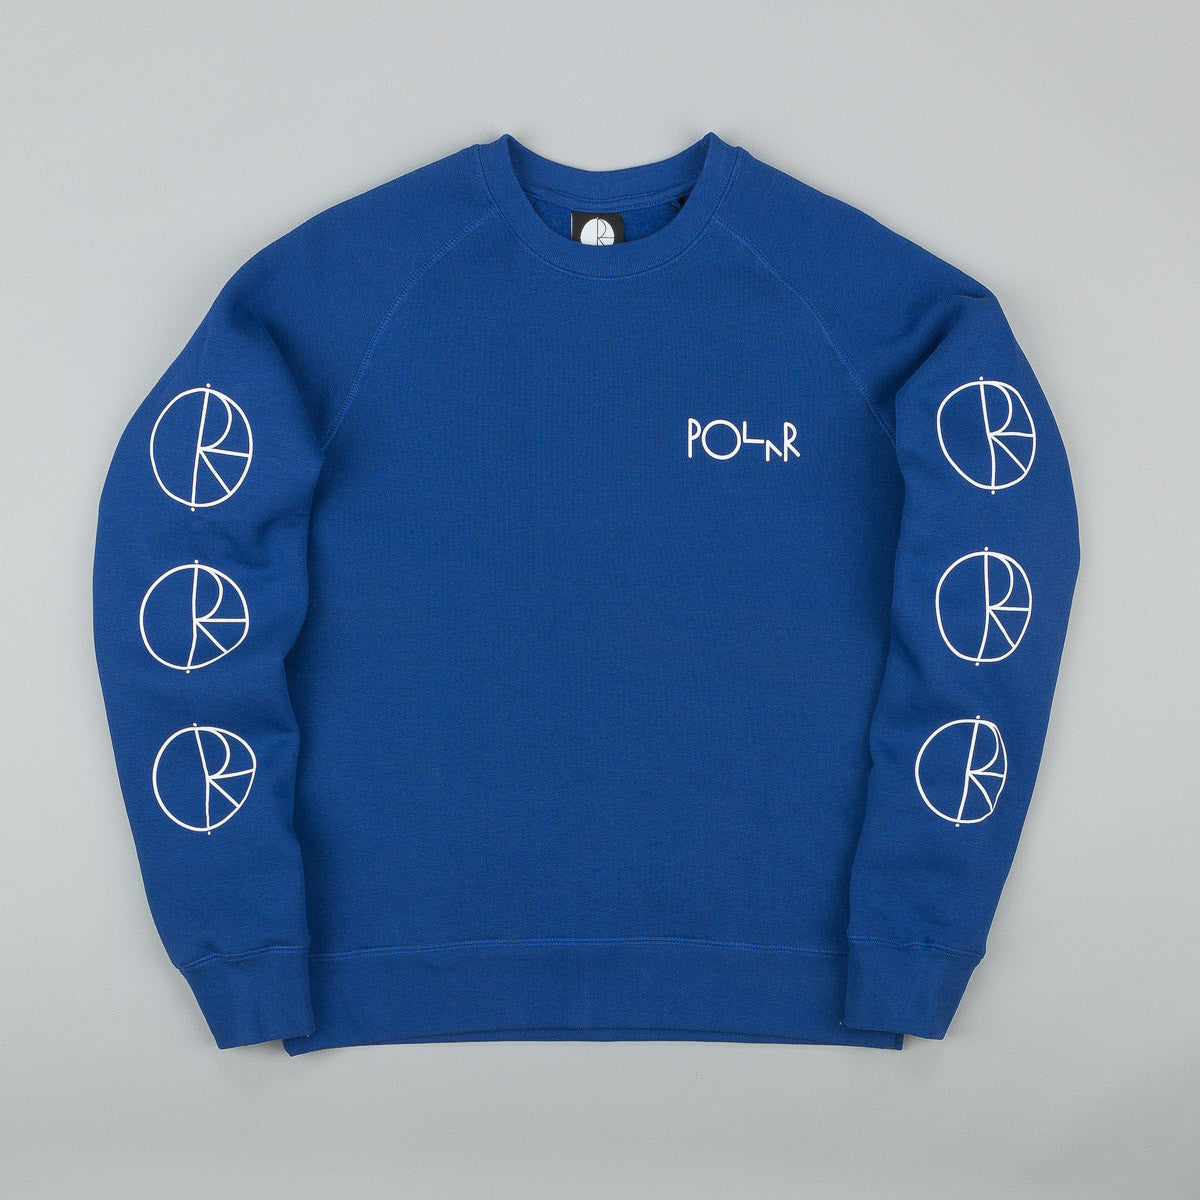 Polar Racing Sweatshirt - Klein Blue / White